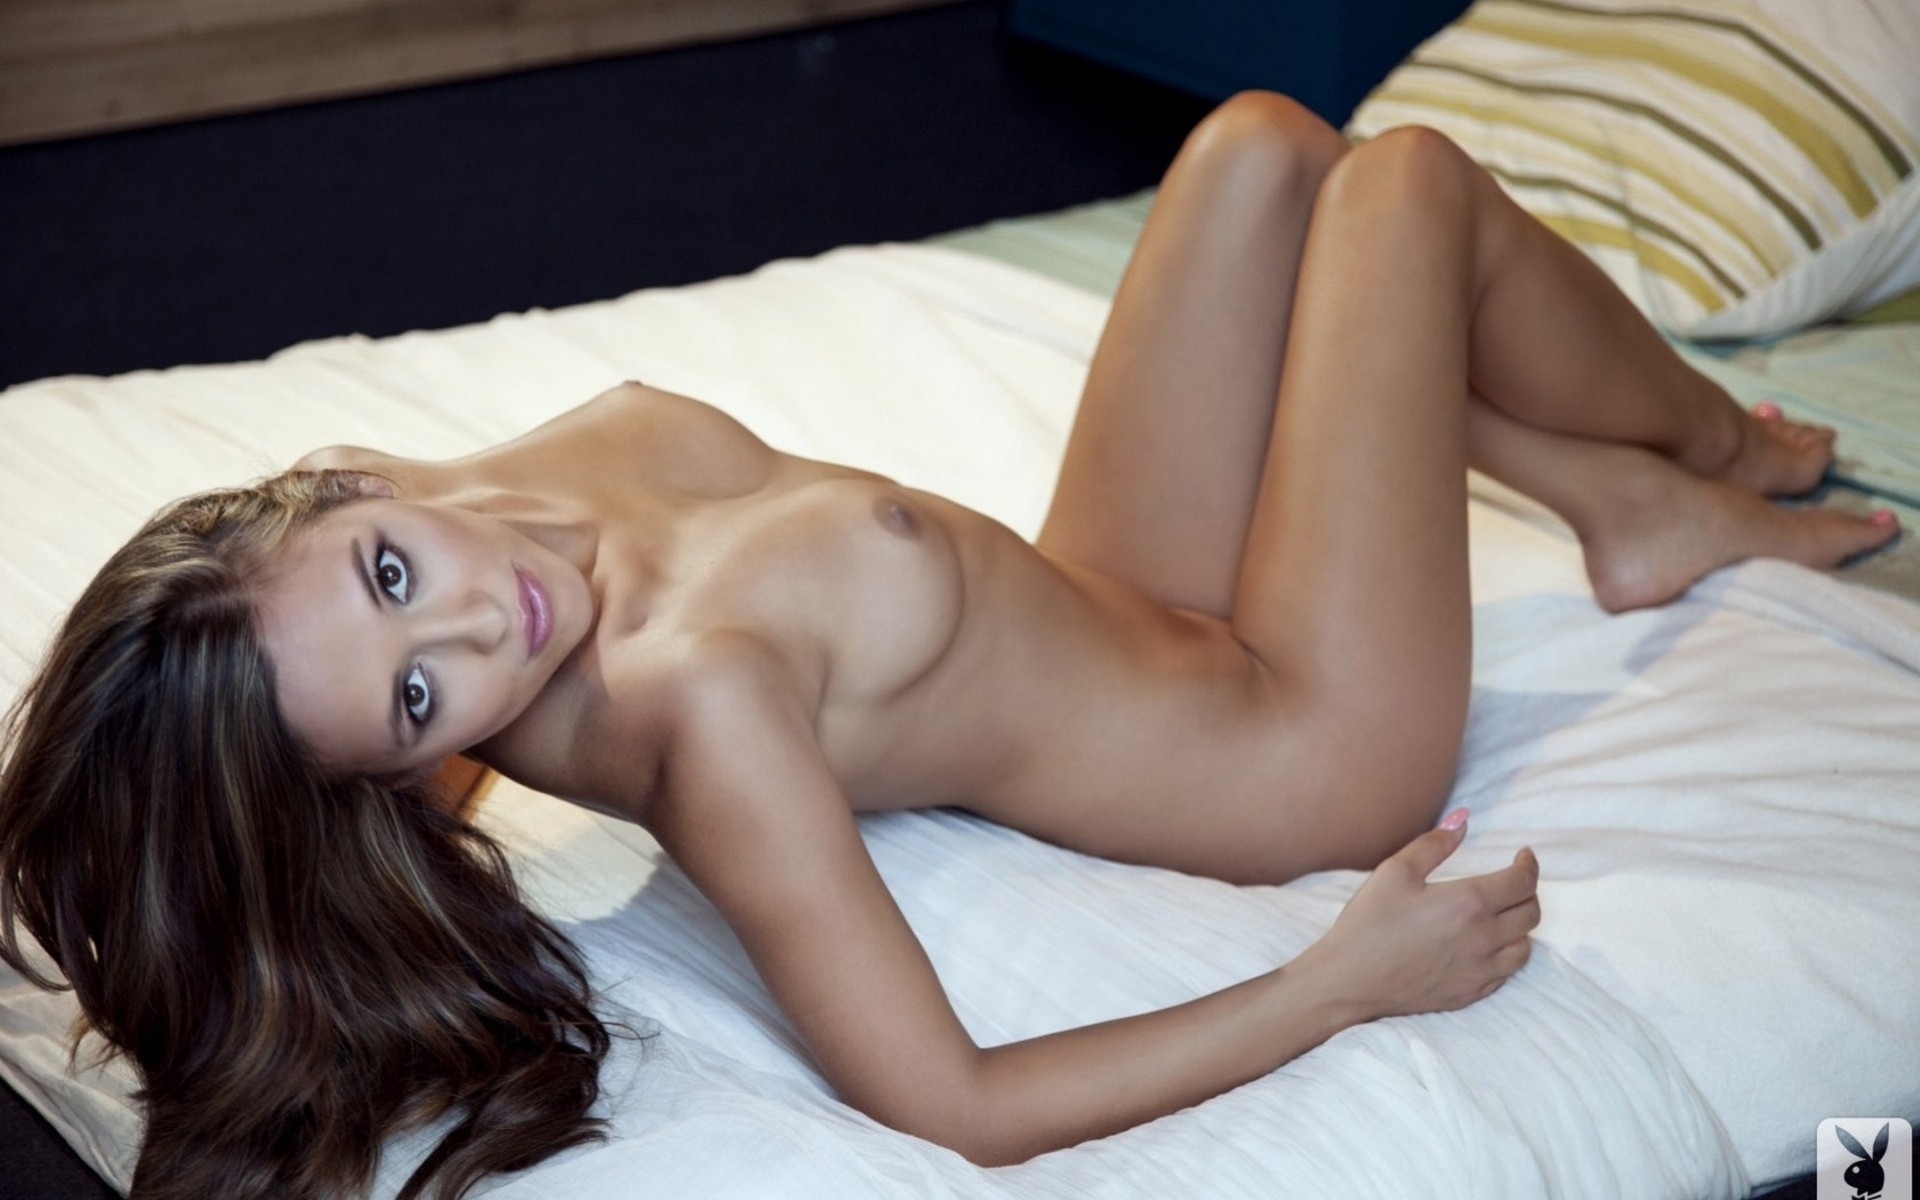 wet-girl-in-bed-nude